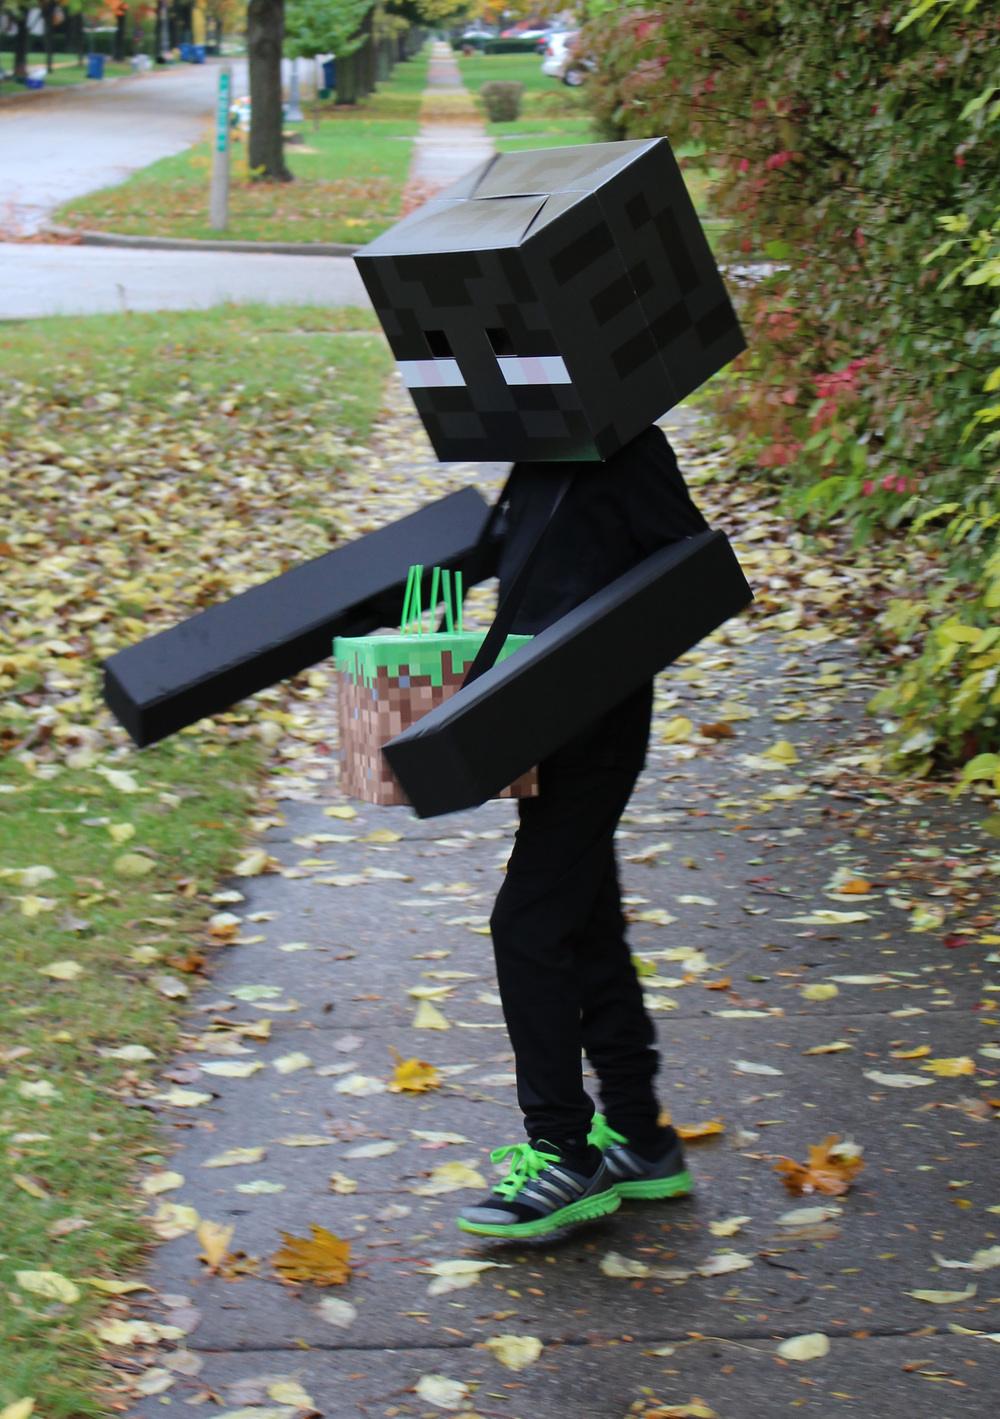 Enderman and his Grass Block Trick or Treat Bag.  Enderpearl inside.